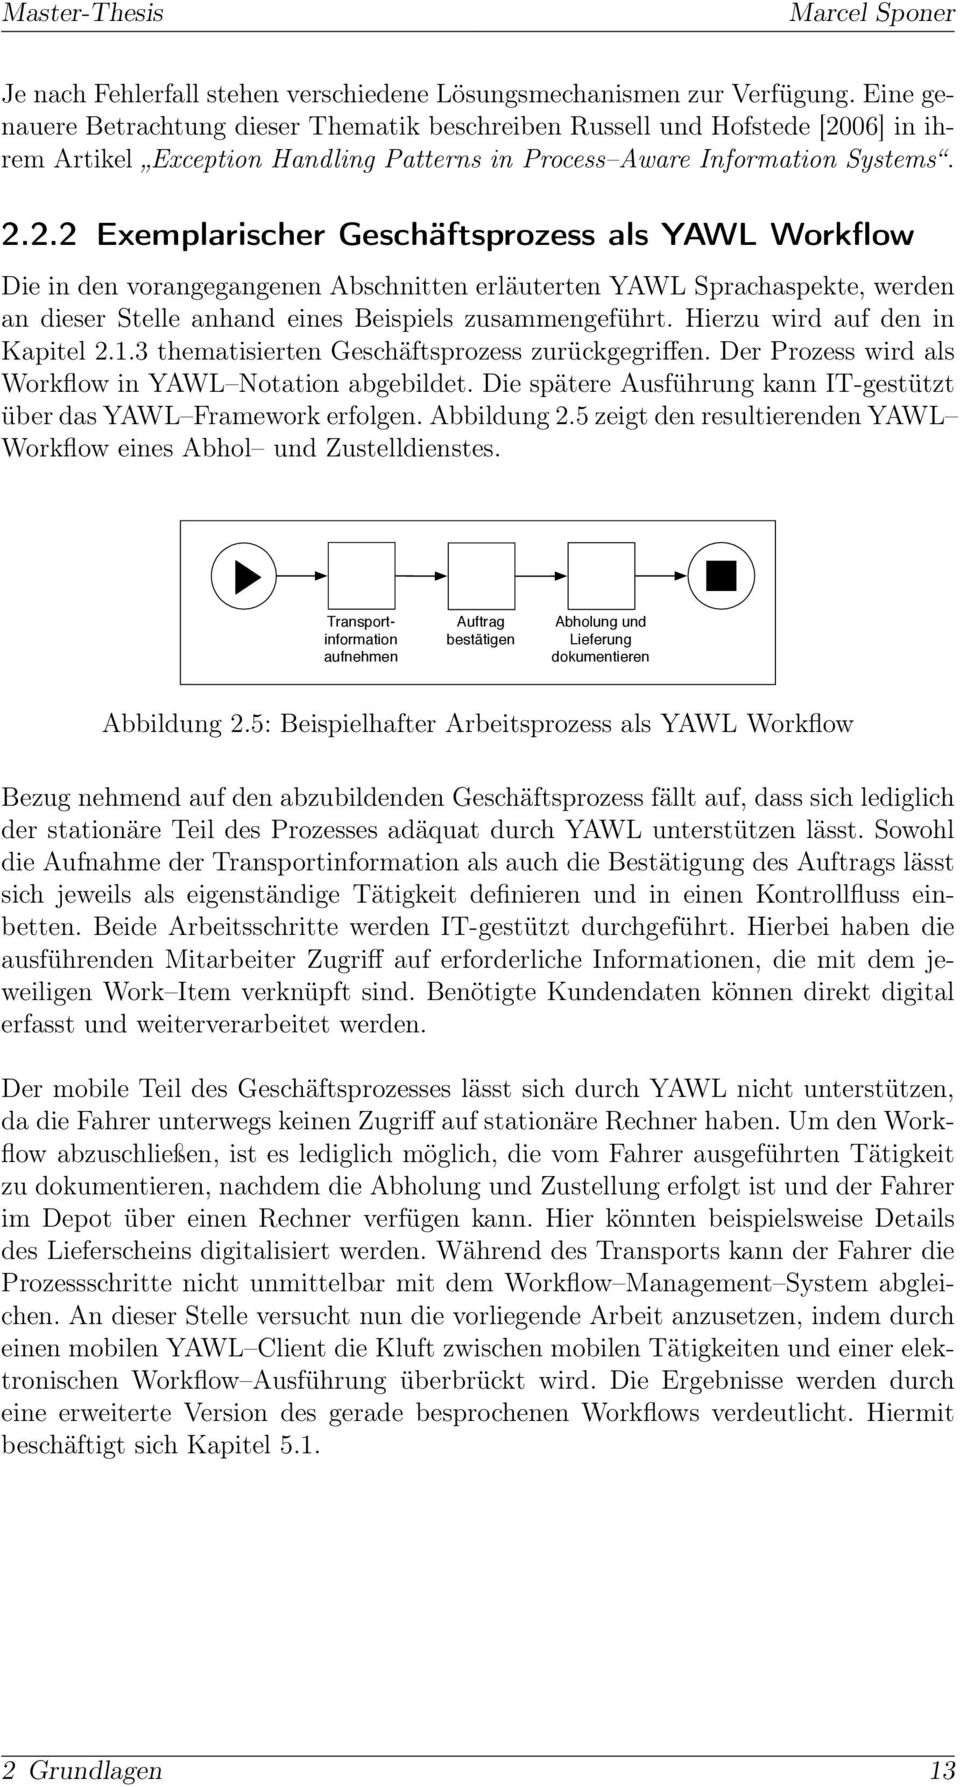 06] in ihrem Artikel Exception Handling Patterns in Process Aware Information Systems. 2.